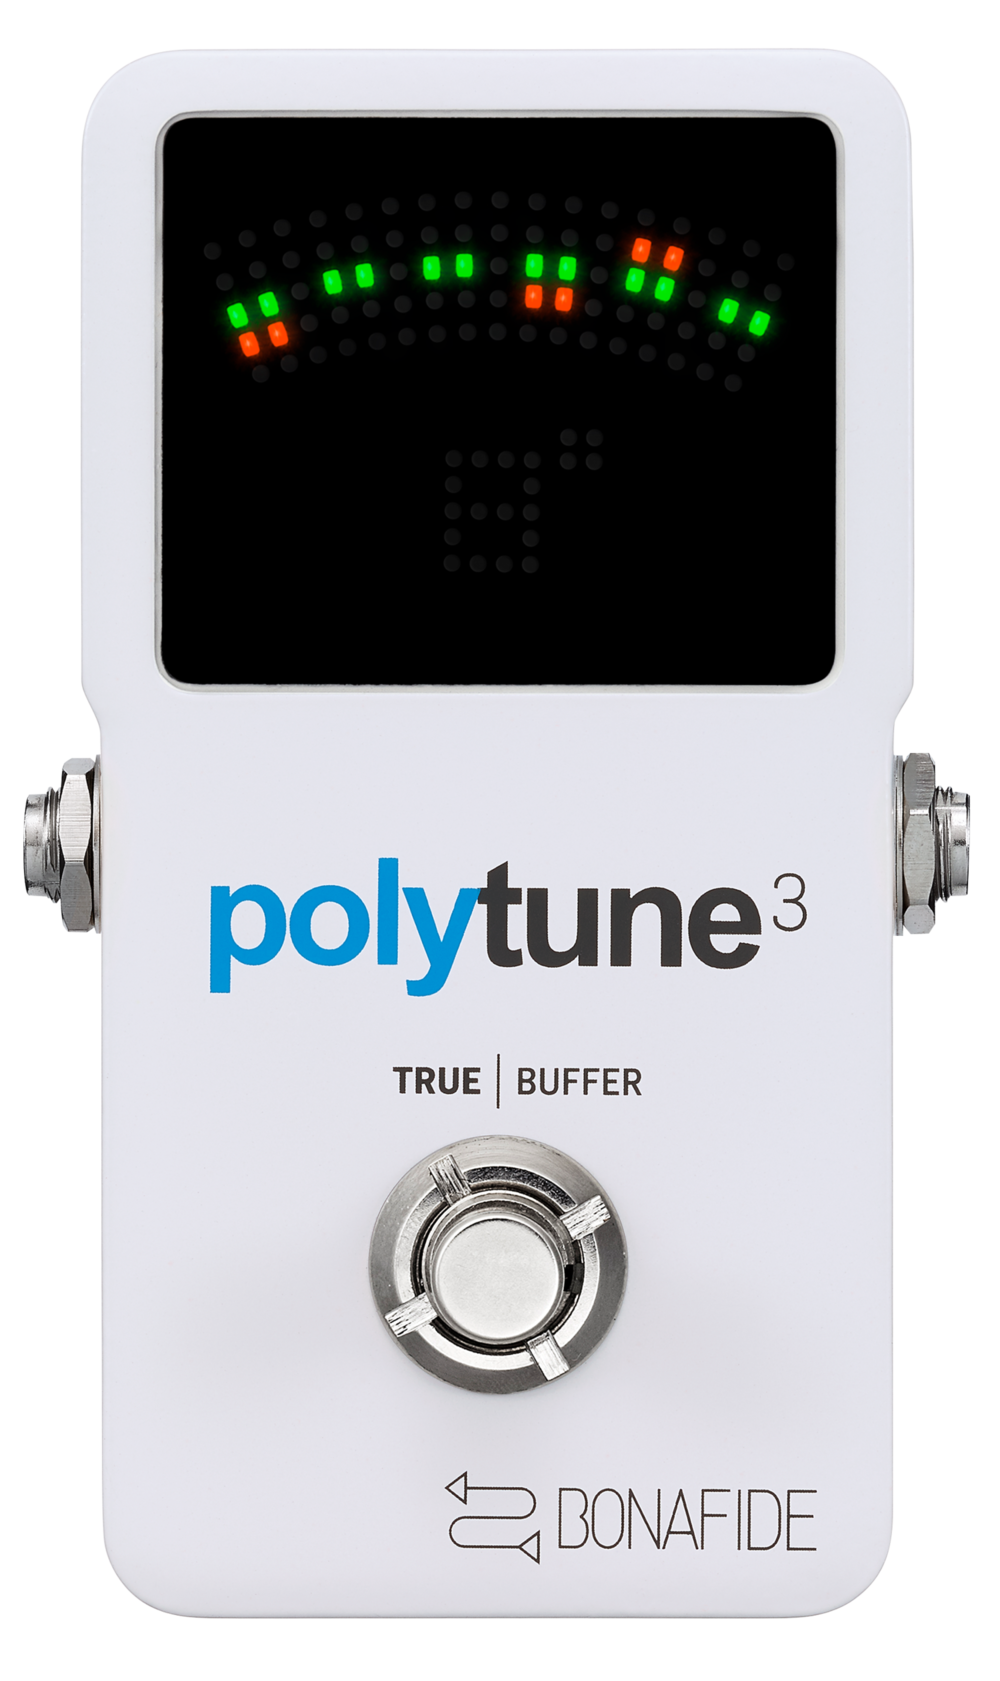 polytune-3-front-polychromatic-hires.png